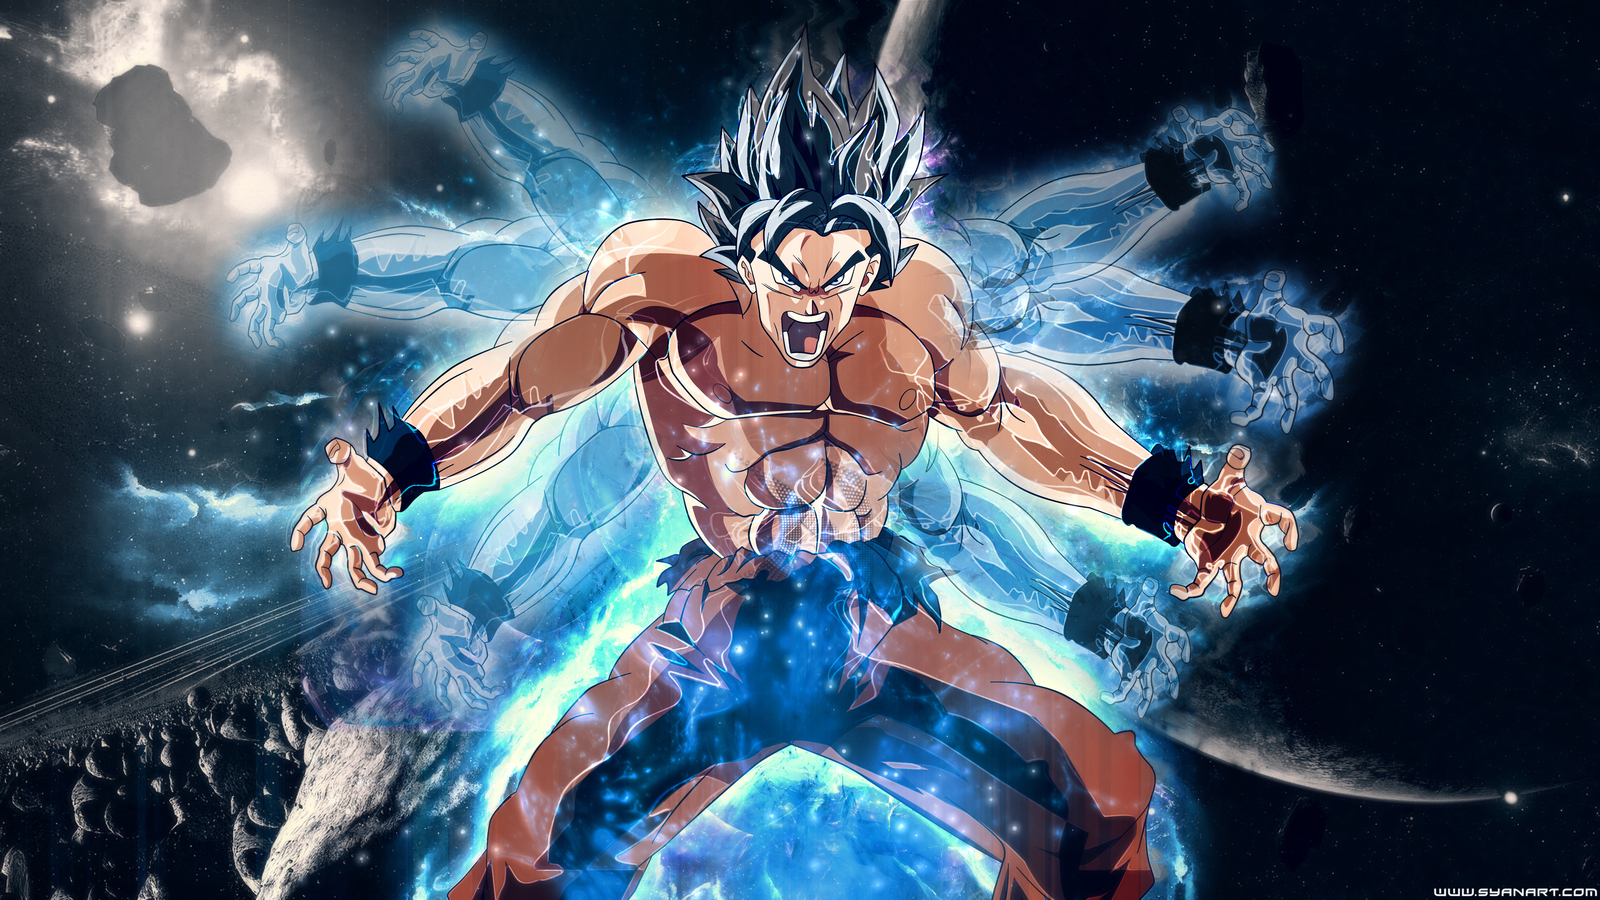 1600x900 Dragon Ball Super Goku 4k 1600x900 Resolution HD 4k